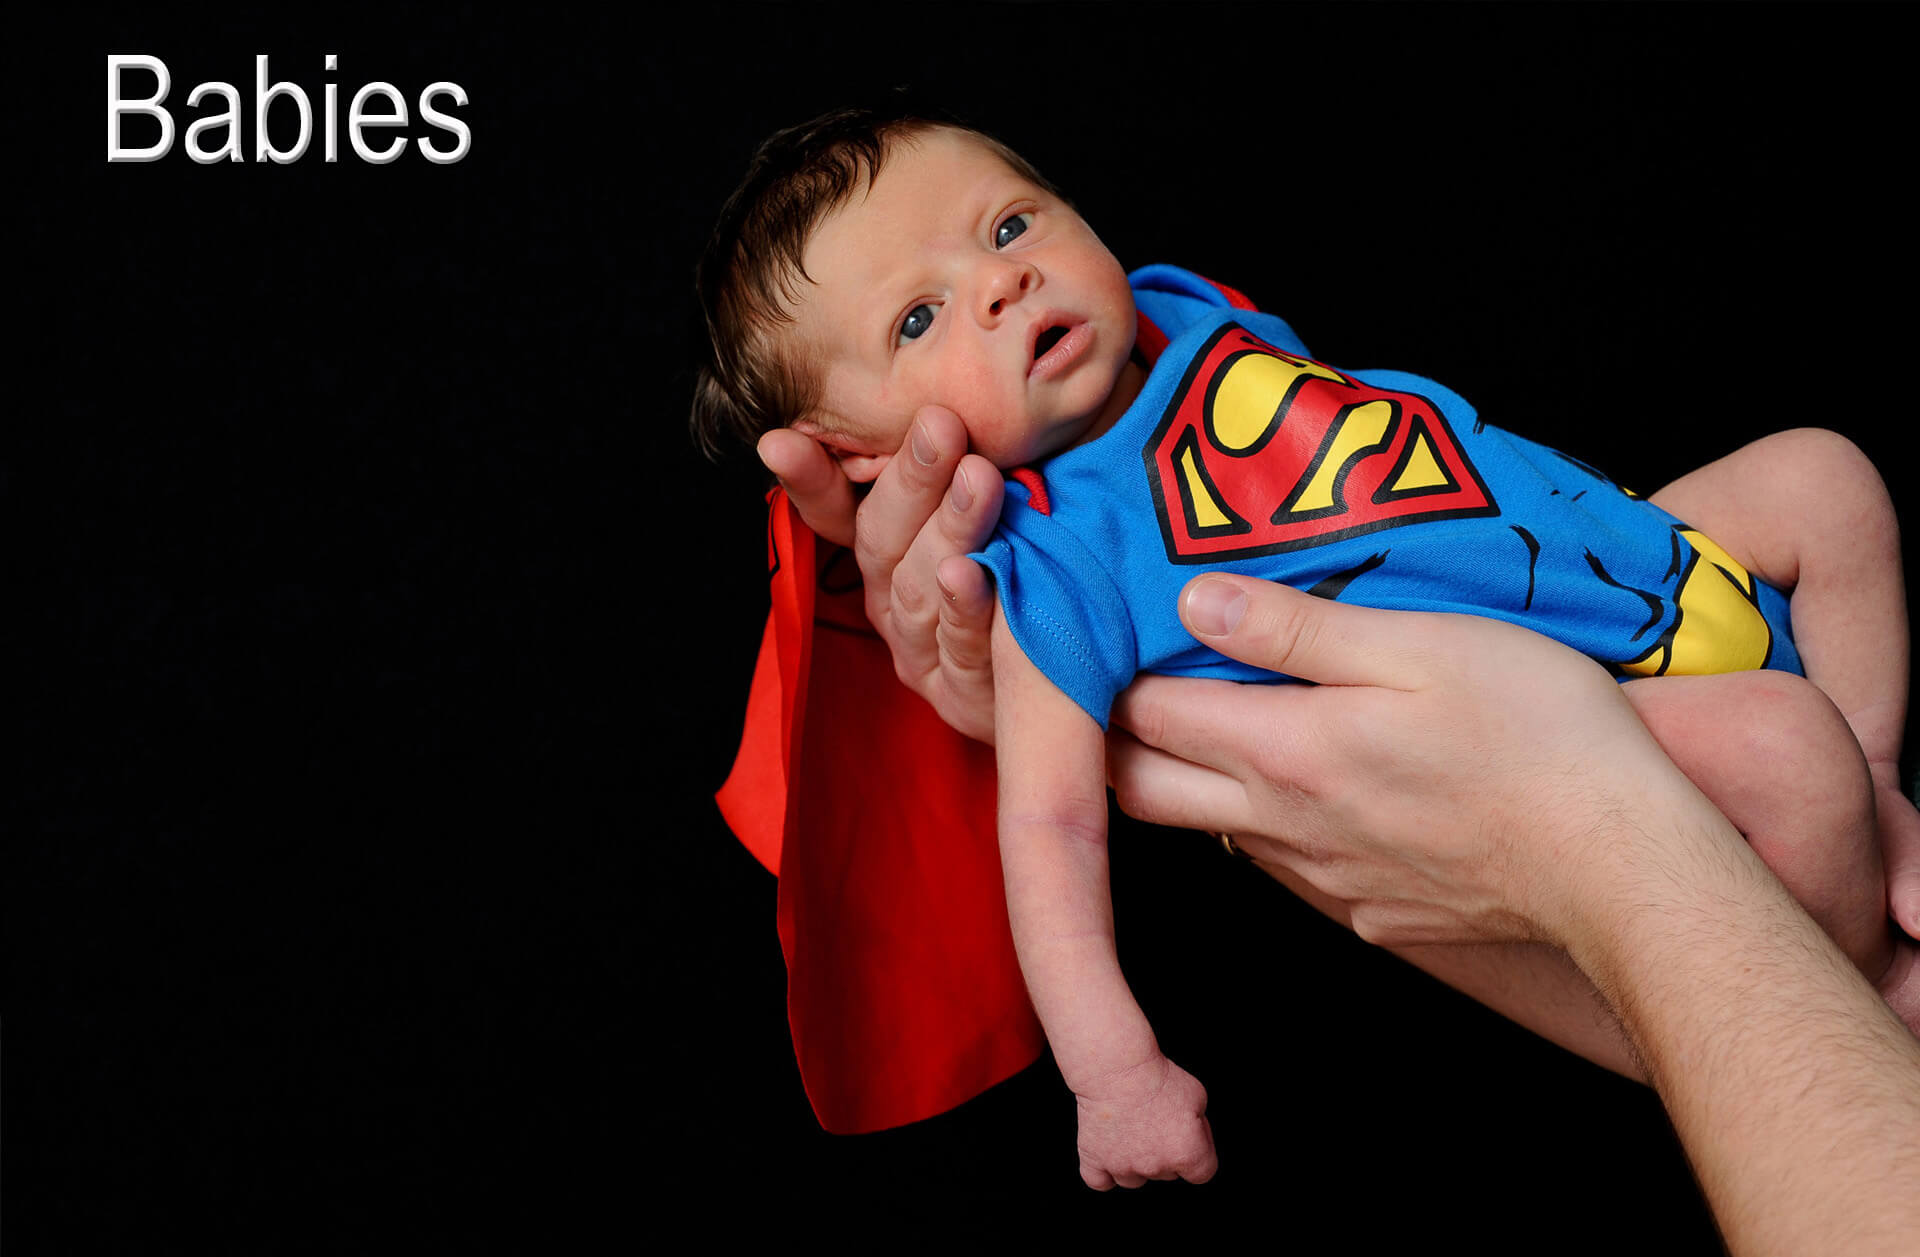 A super baby was born in the metro Detroit, Michigan area as this babe poses at the Troy studio in his Superman baby outfit.